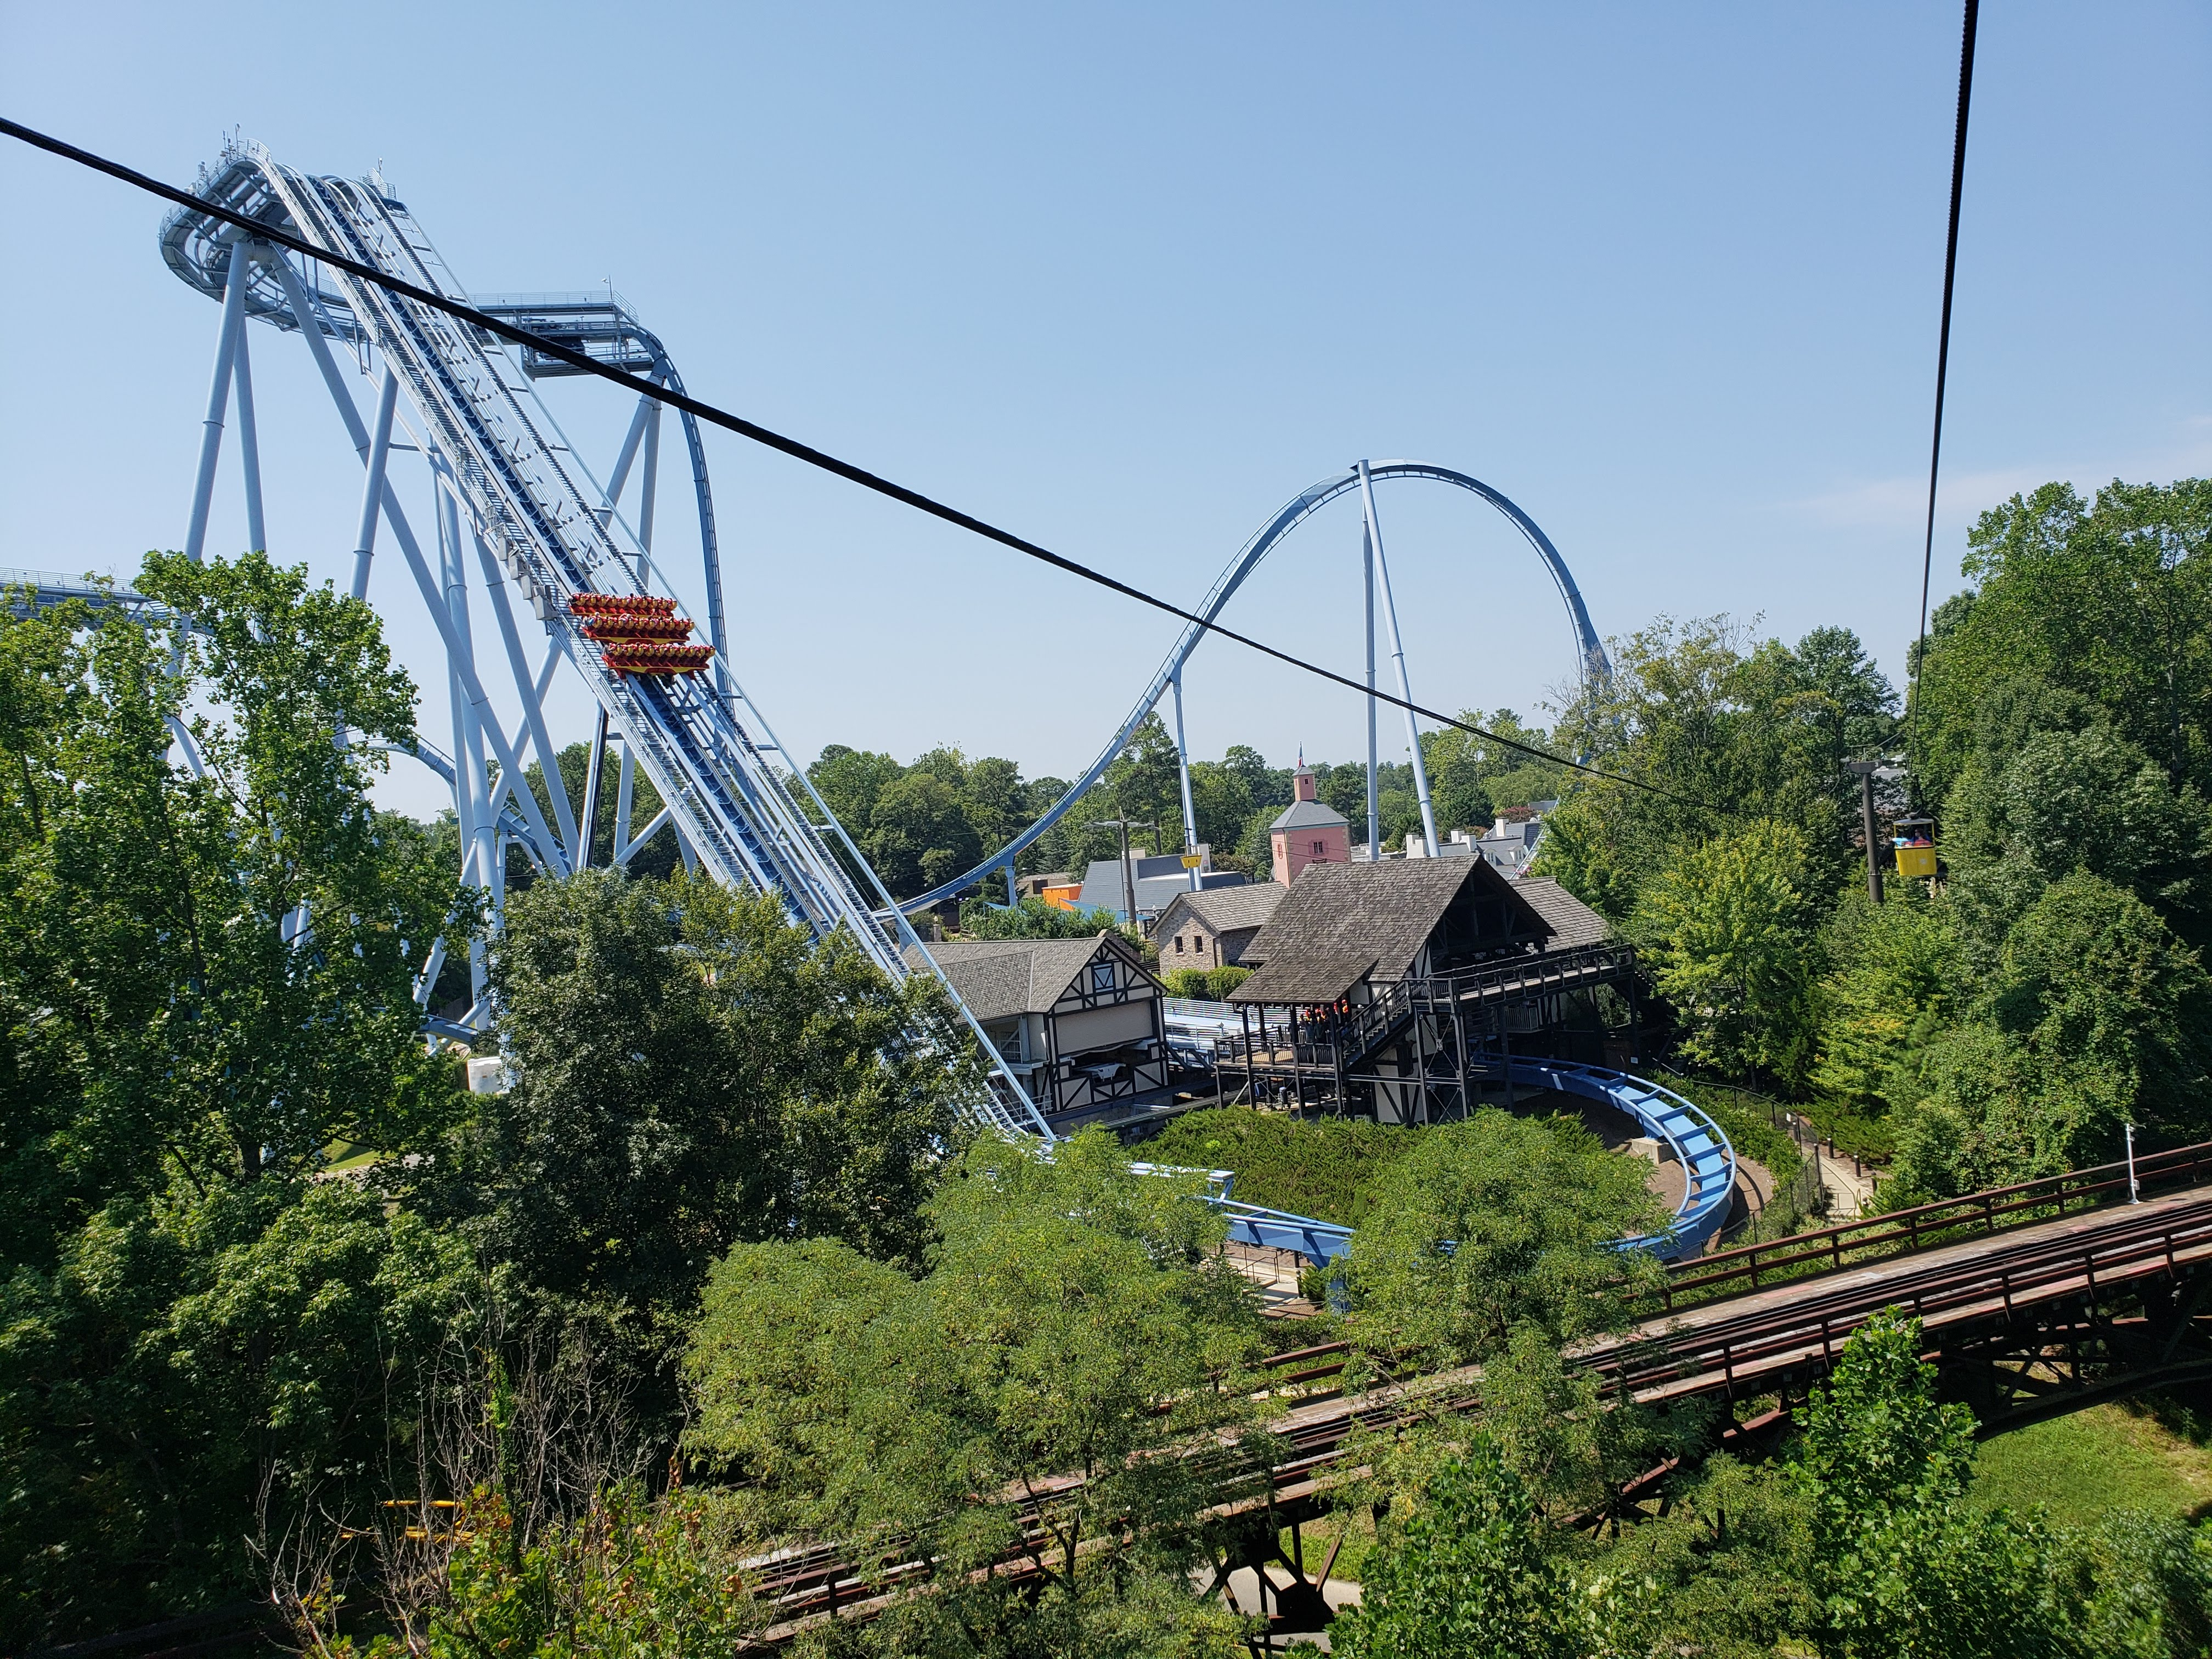 Family Vacation To Busch Gardens Williamsburg In Summer   Theresau0027s Reviews